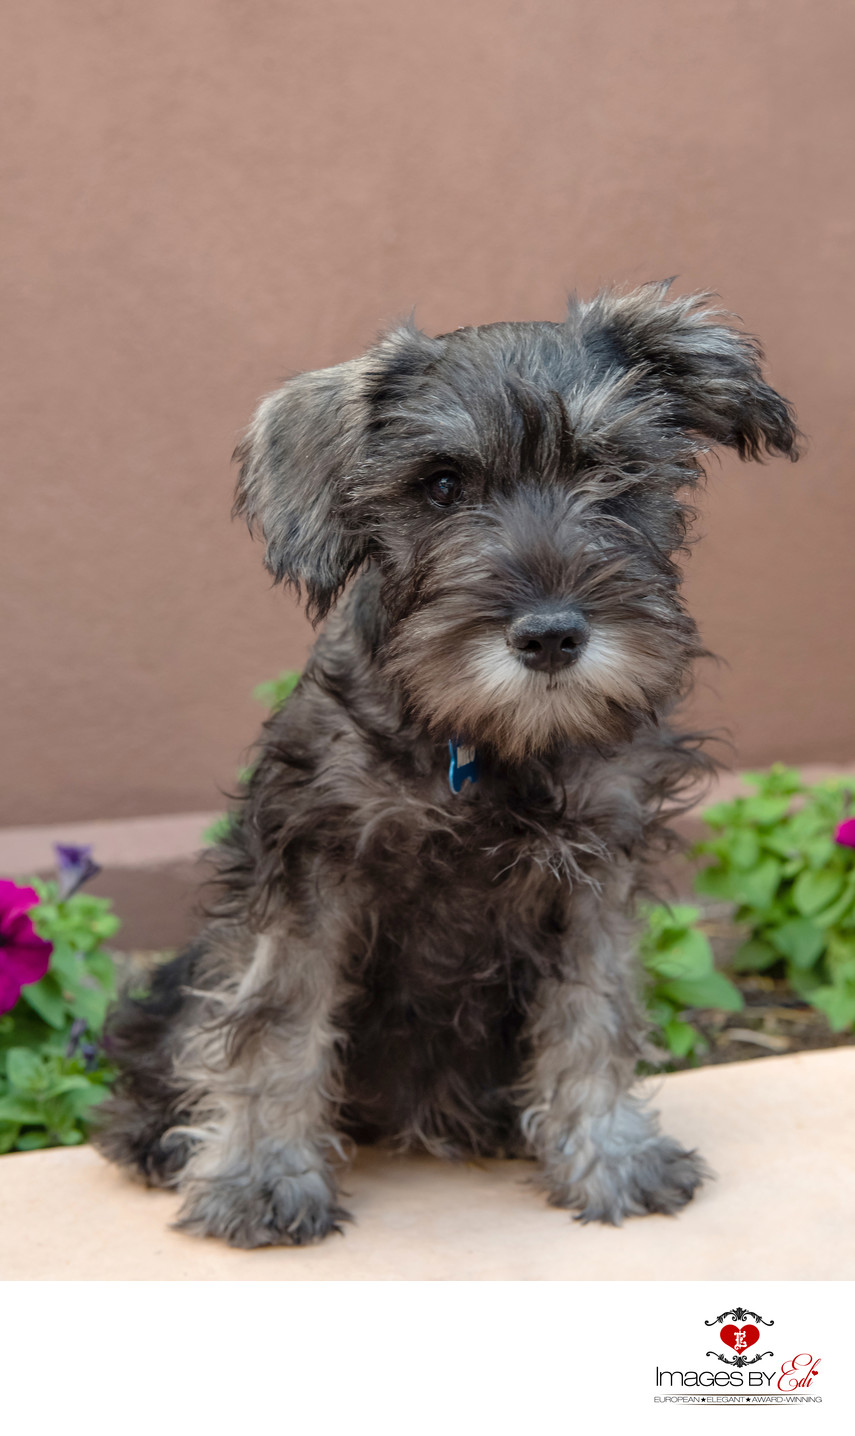 Pet Photo of Schnauzer Boy | Las Vegas Pet Photographer | Watch Me Grow Photo Session | Vegas Pet Photography session | Images By EDI